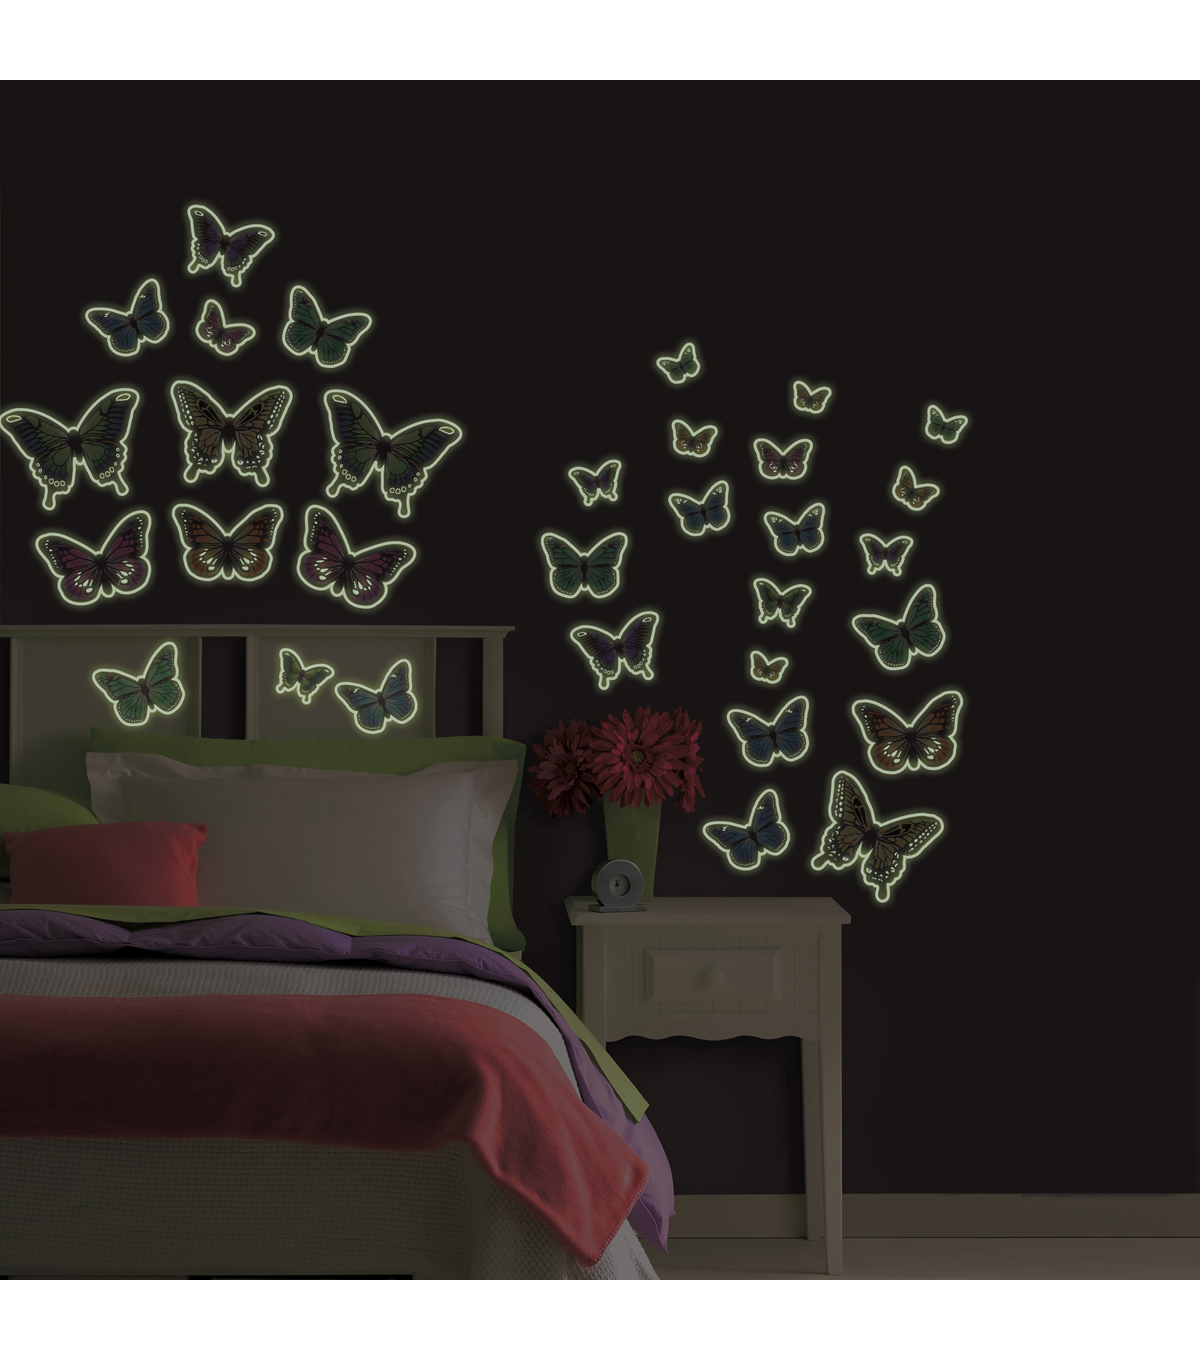 Wall Pops Glow in the Dark Butterflies Appliques, 32 Piece Set